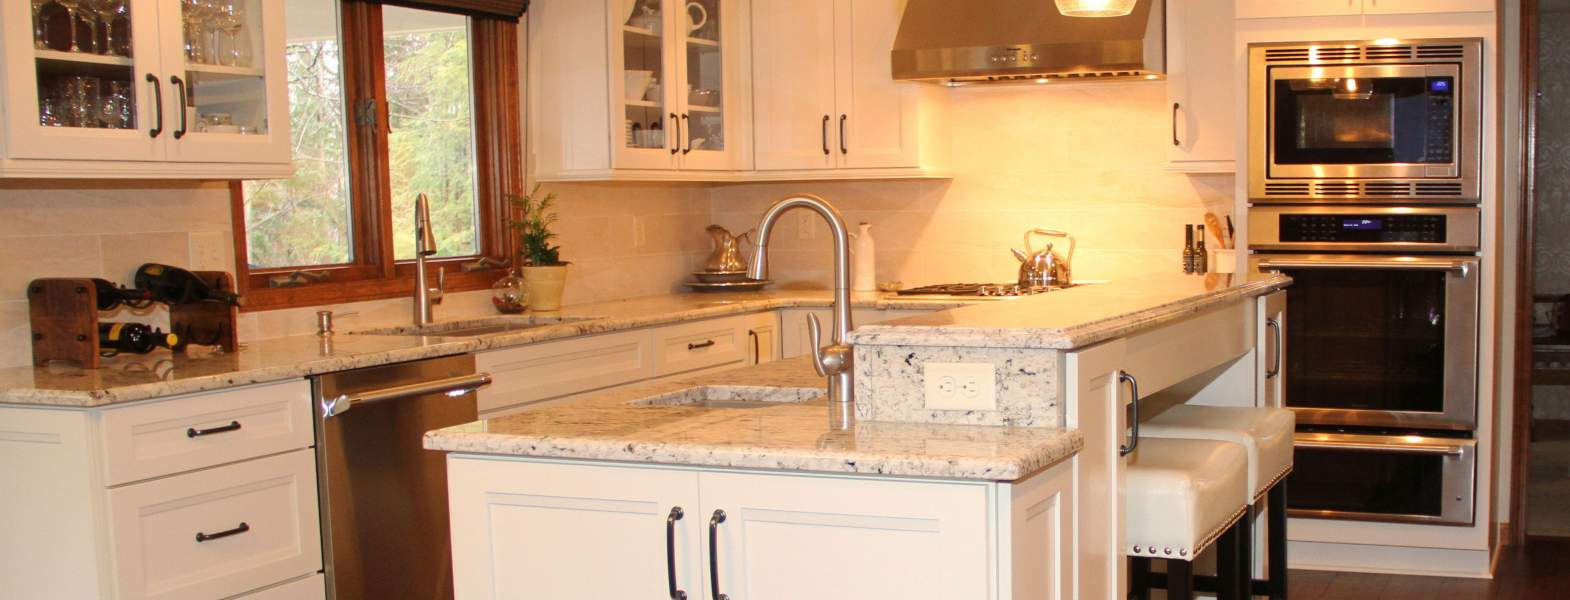 Elegant Transitional Kitchen Kitchens Projects Repp Renovations Buffalo Ny Design